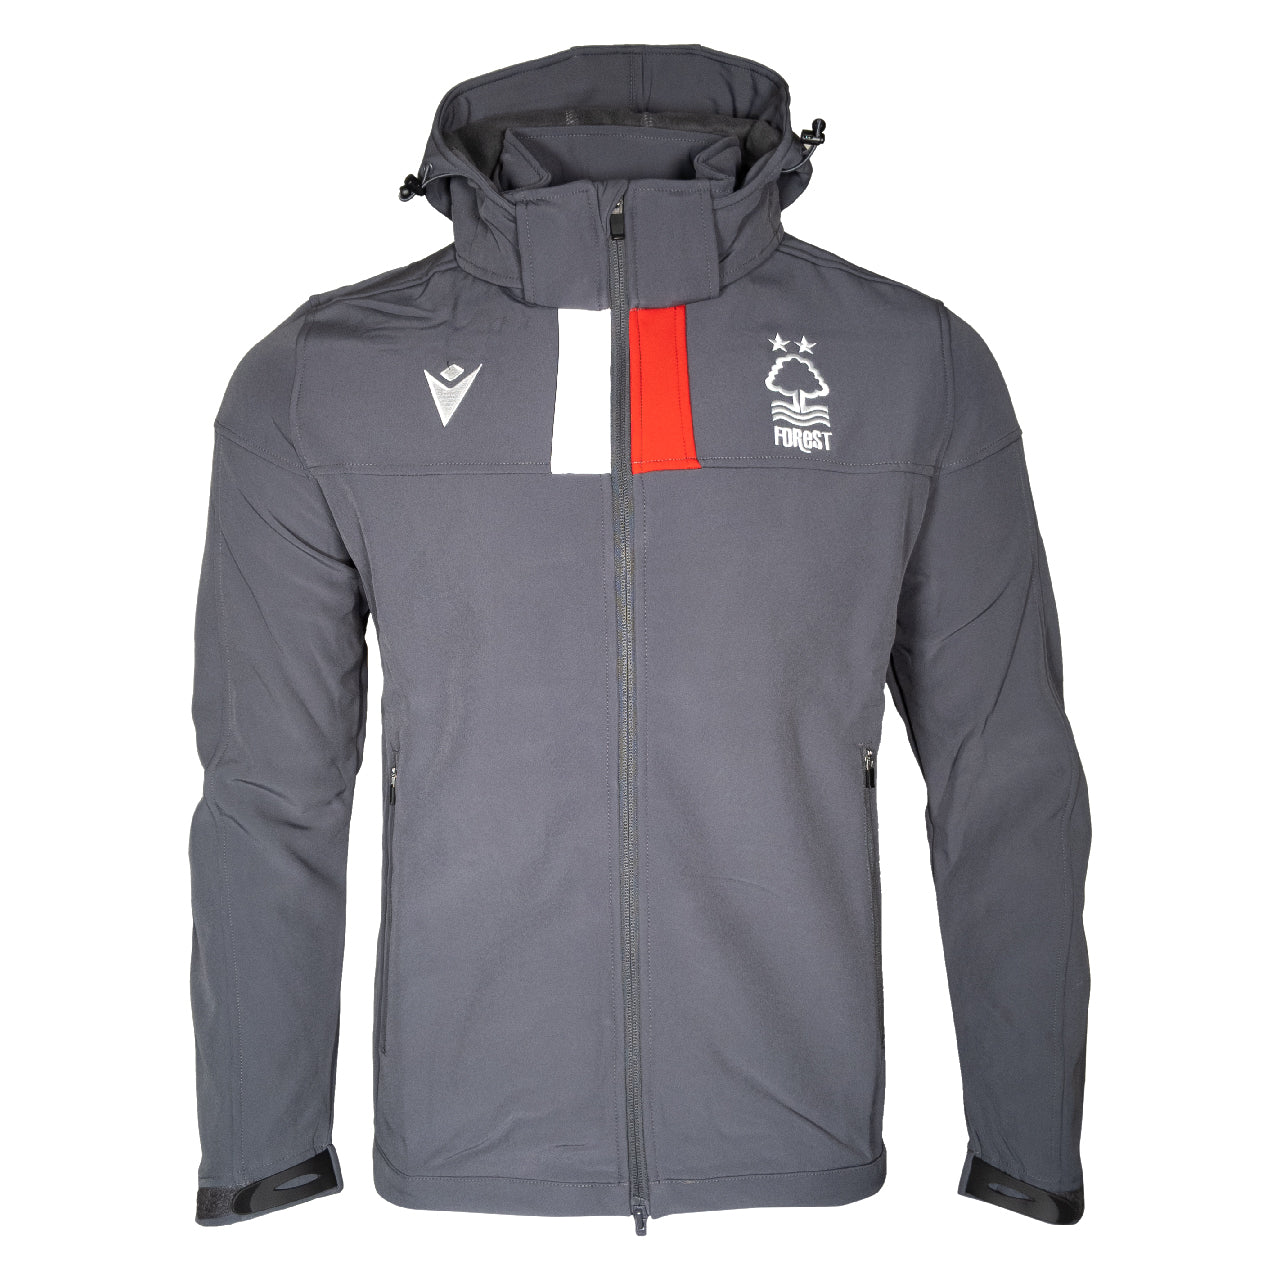 NFFC Junior Grey Staff Softshell Jacket 19/20